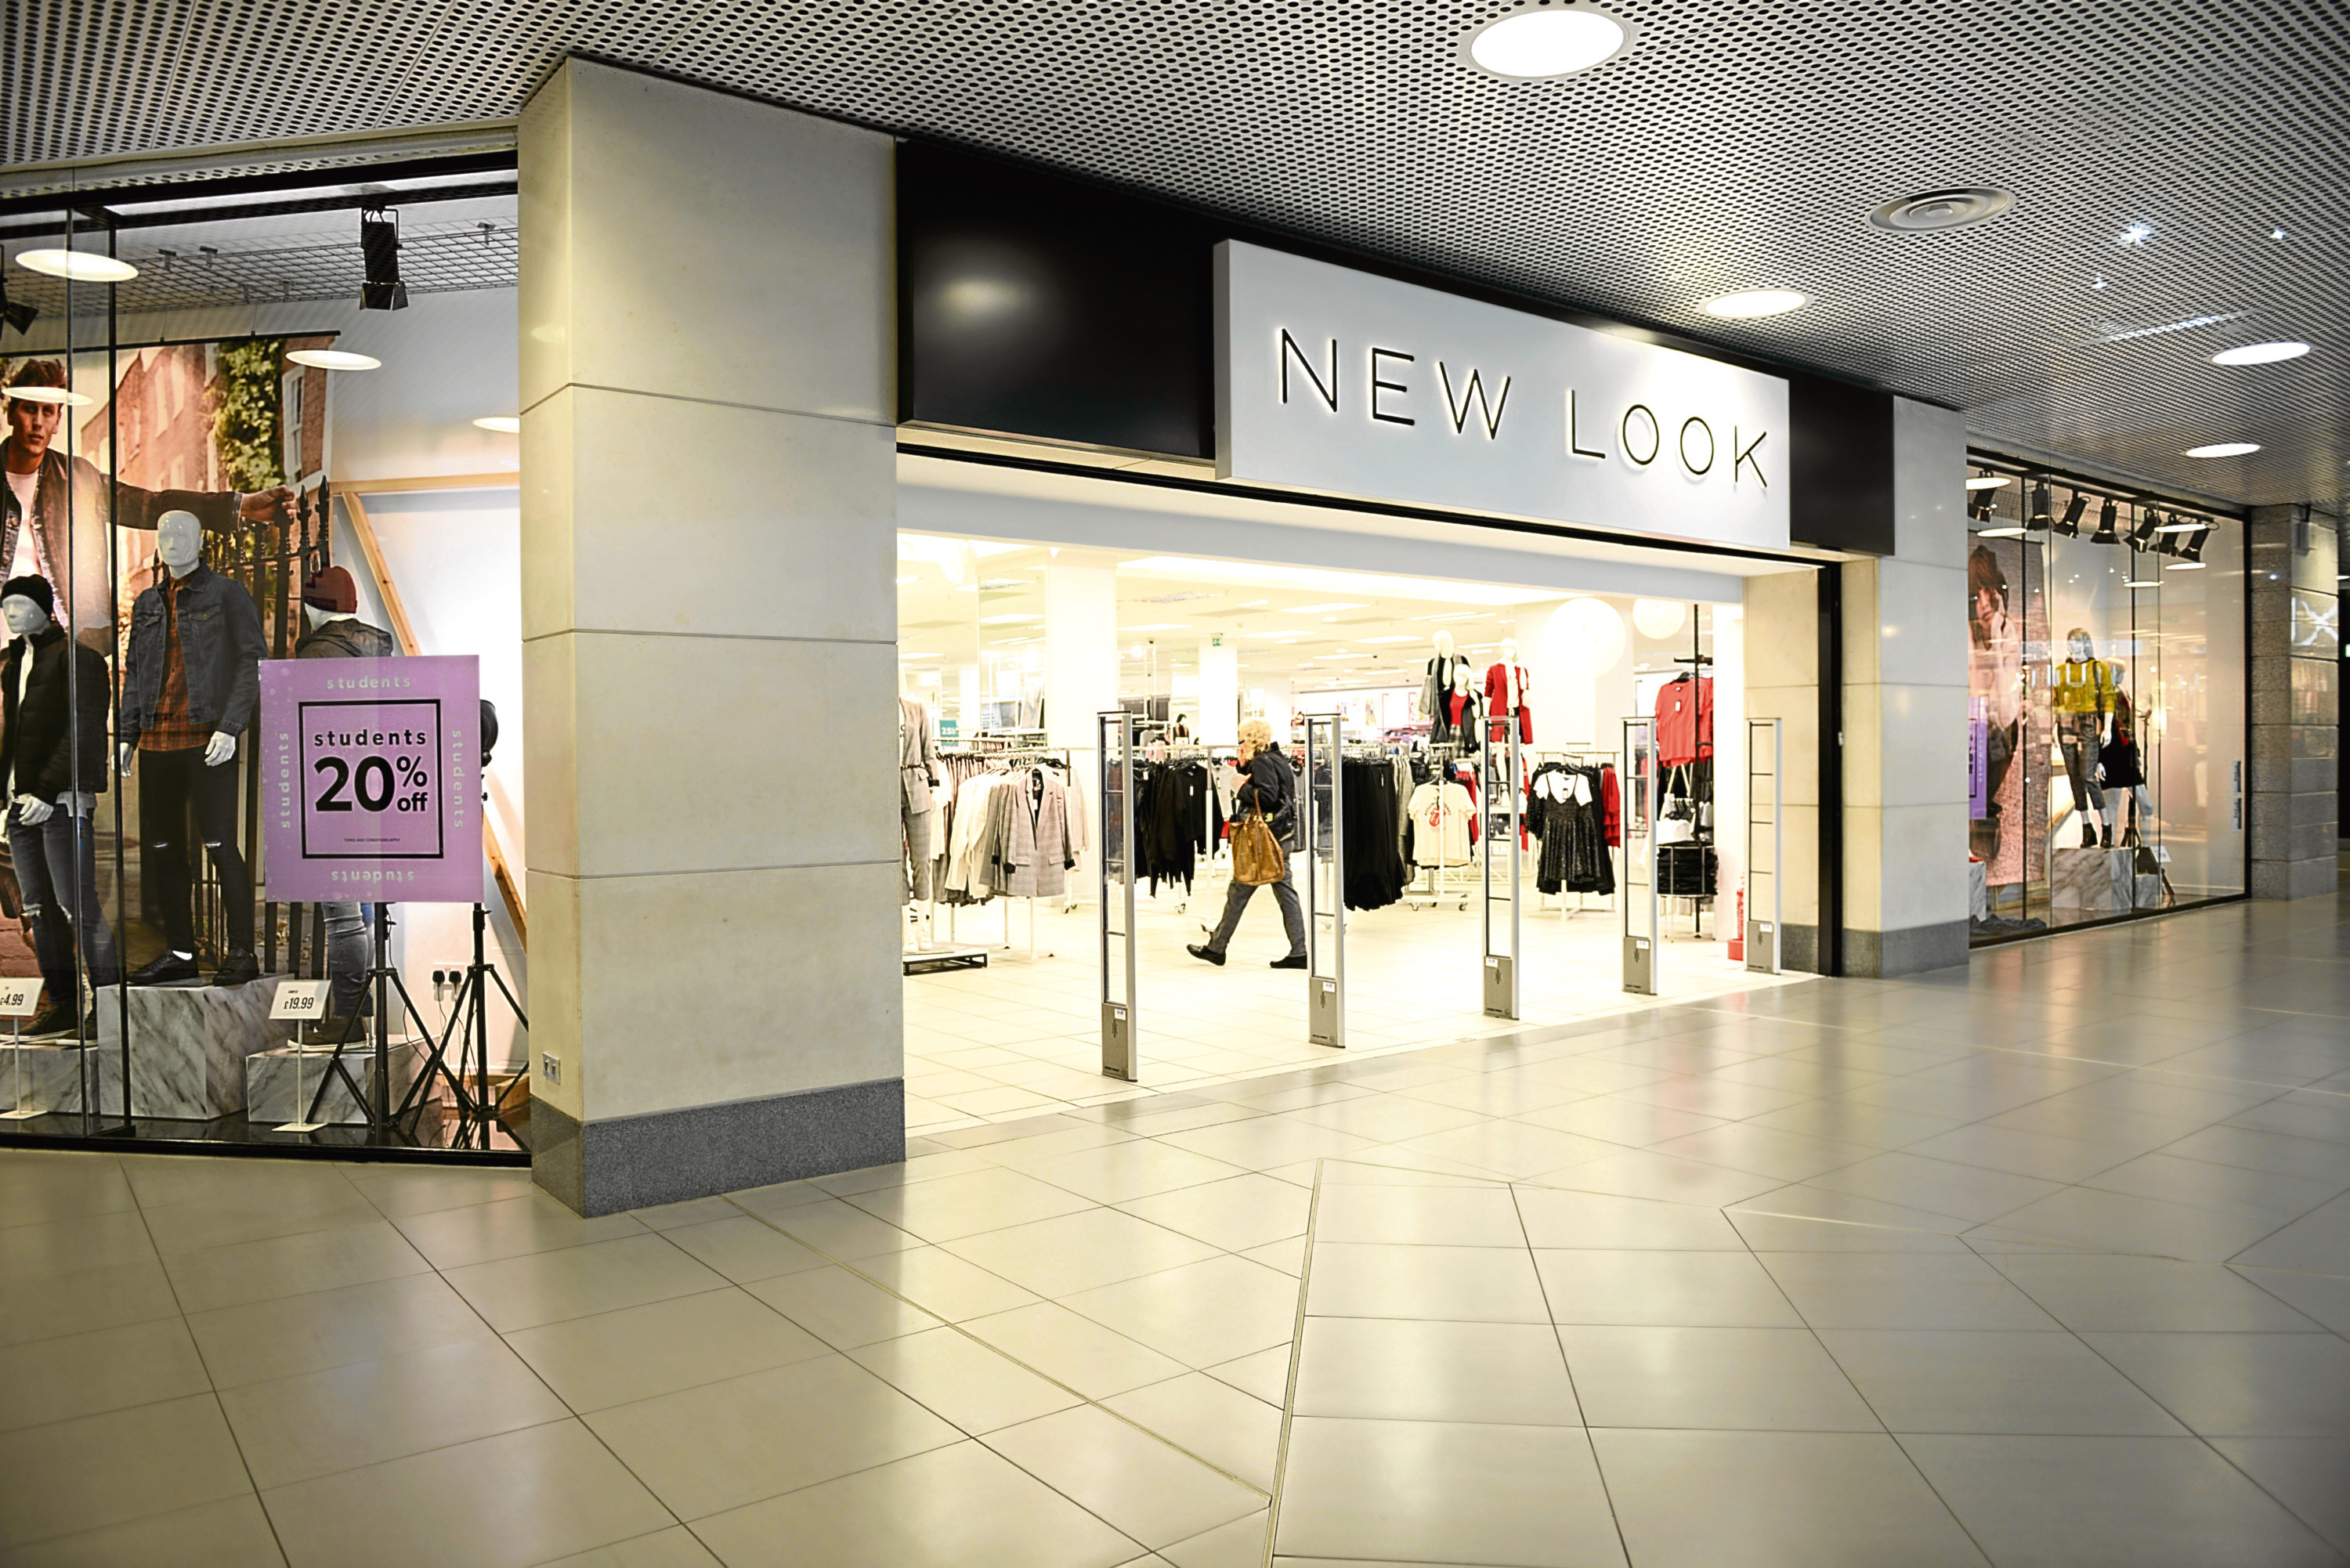 New Look in the Bon Accord Centre could close